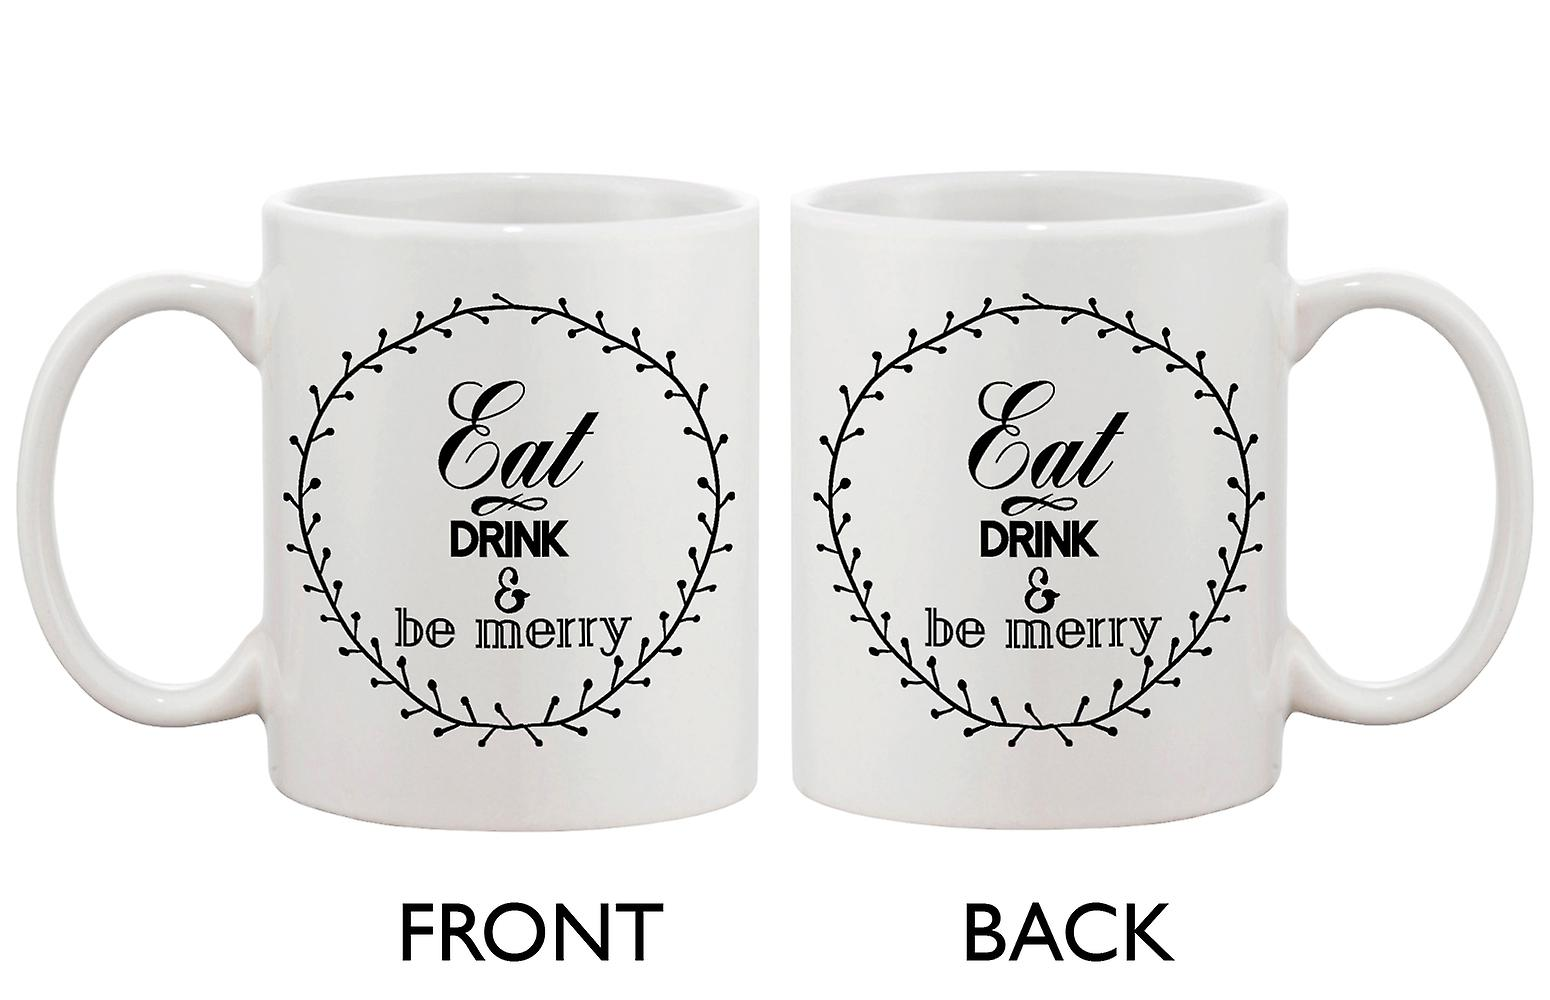 Be For Holiday Idea Drink Coffee Gift Eat Merry Christmas Cute Mugs Mug And 7gyYb6fv